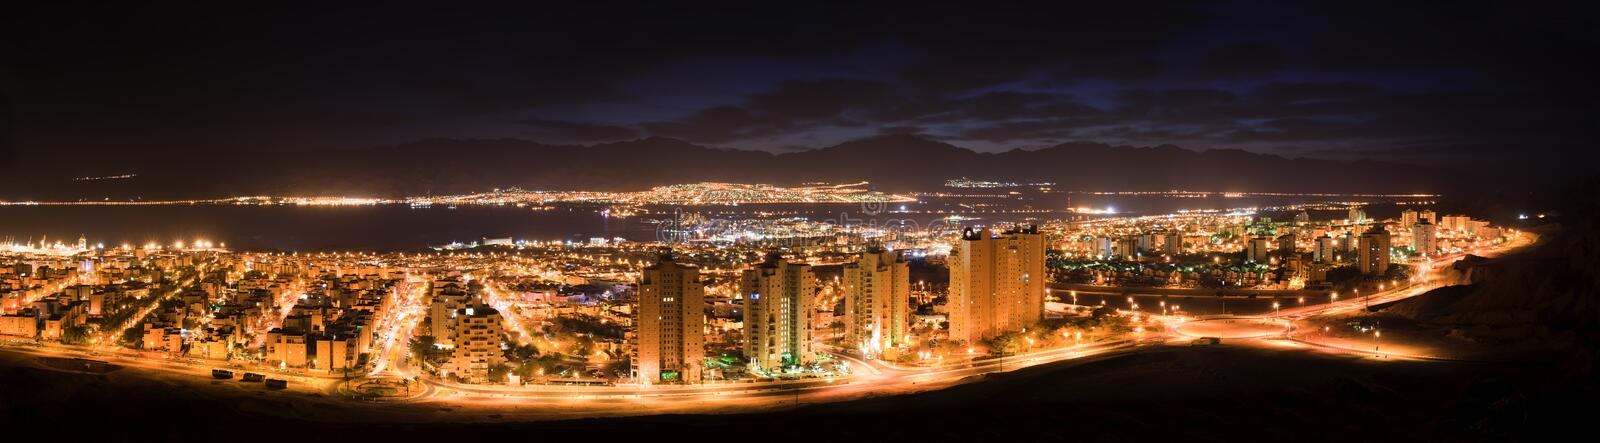 Night panoramic view of Eilat, Israel stock image